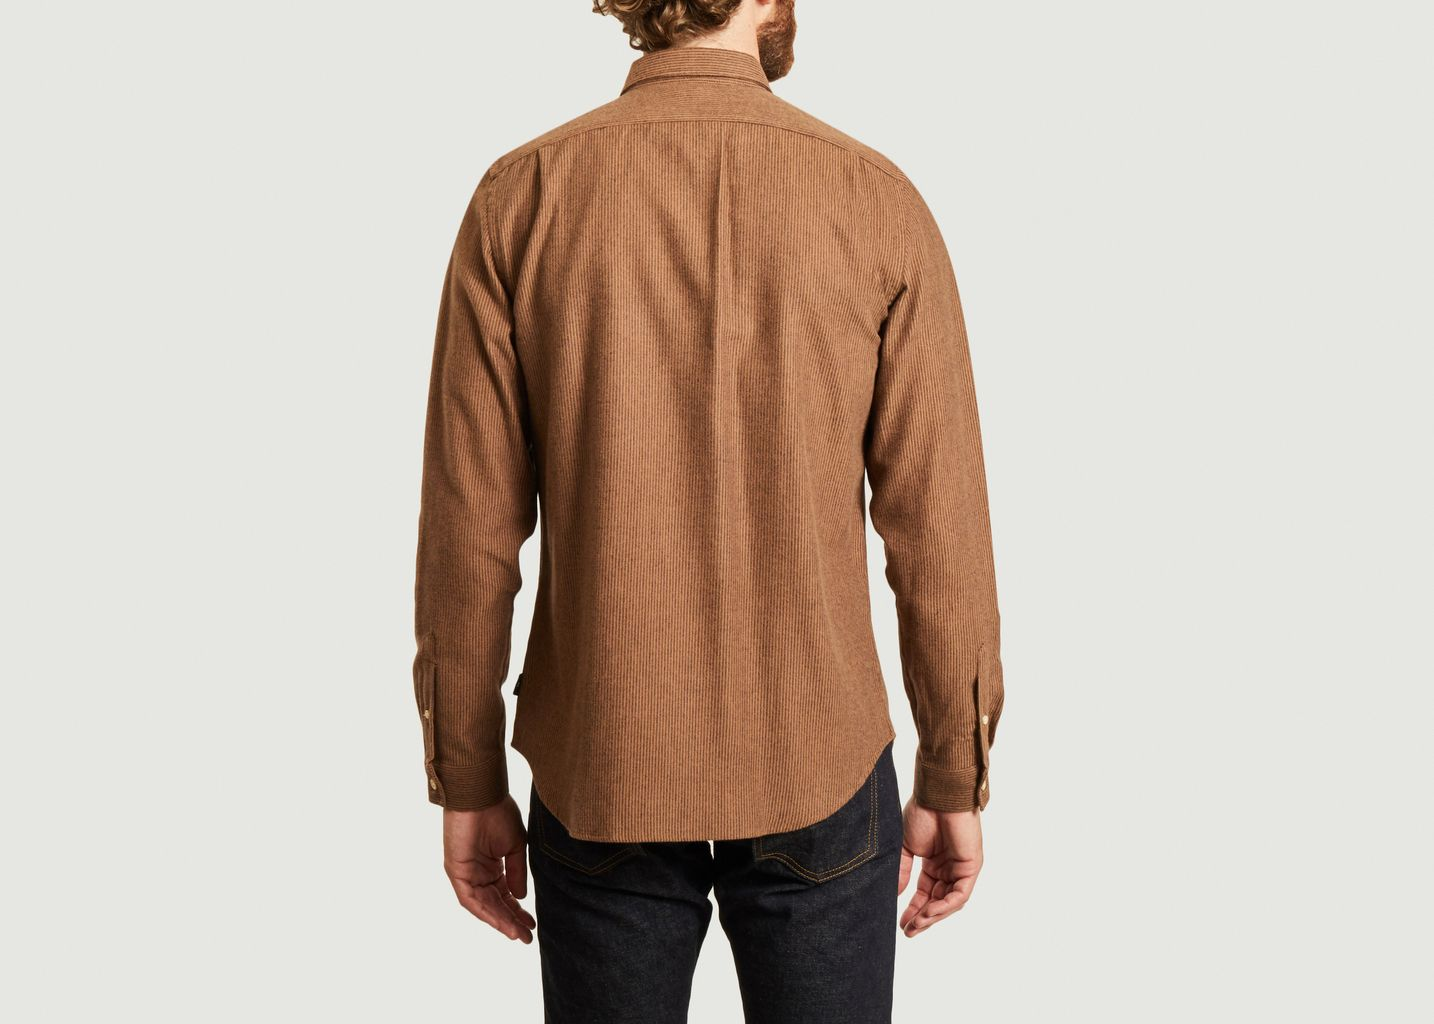 Chemise Unie - PS by PAUL SMITH